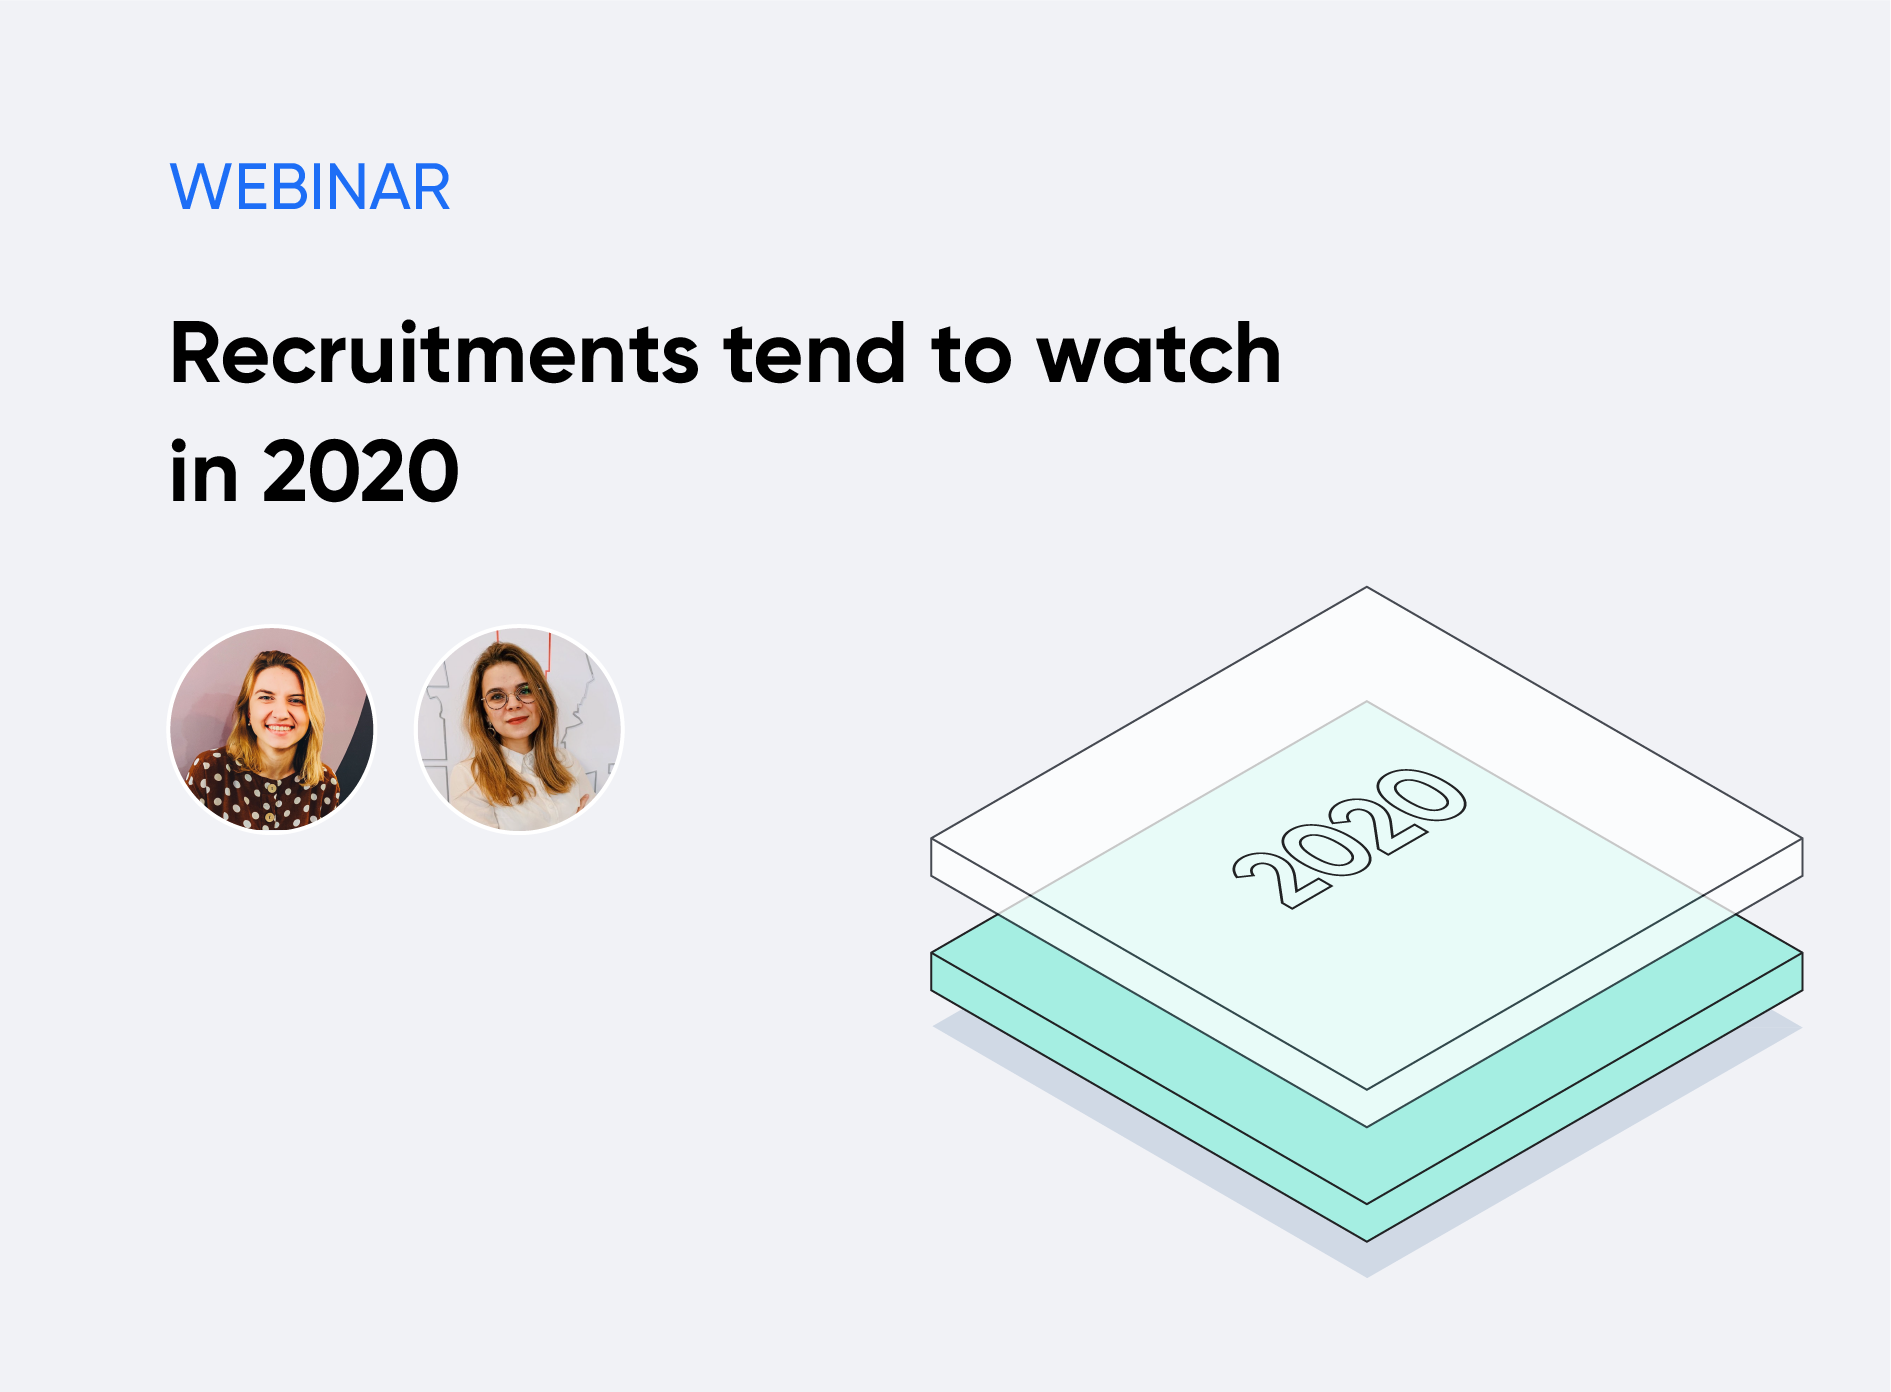 Recruitment trends to watch for in 2020